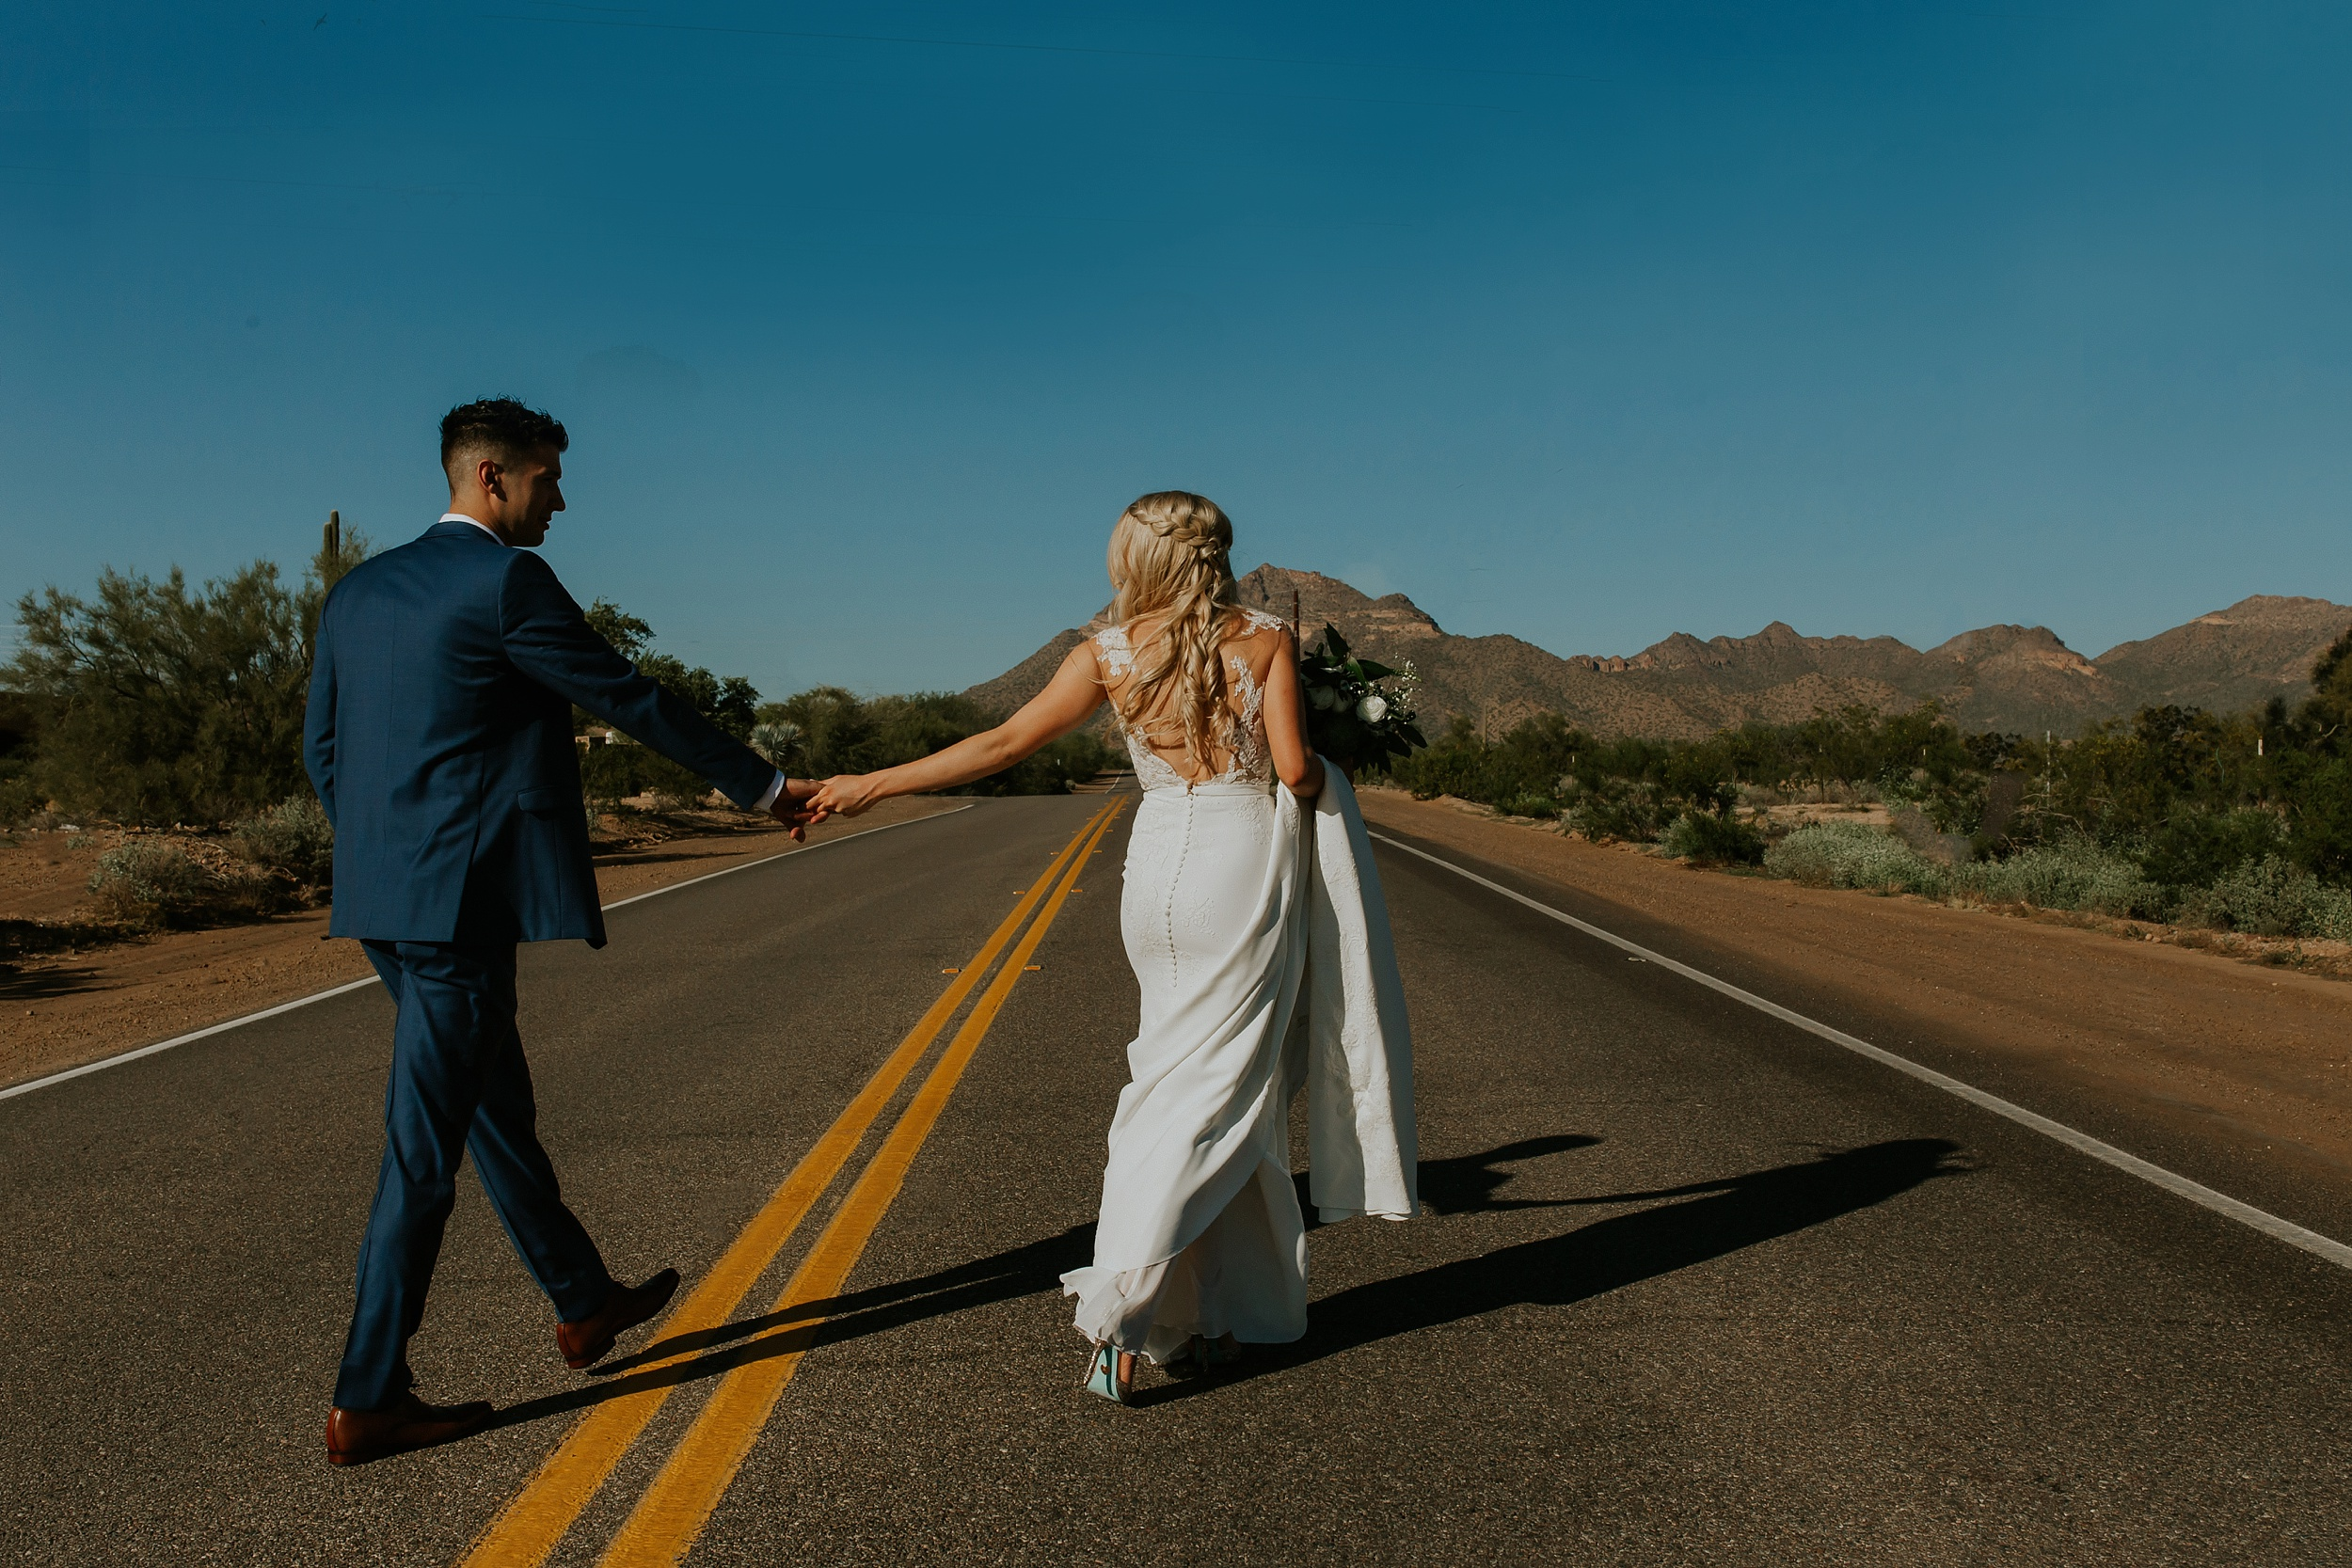 Meg+Bubba_Wedding_Bride+Groom_Portraits_Arizona-13.jpg